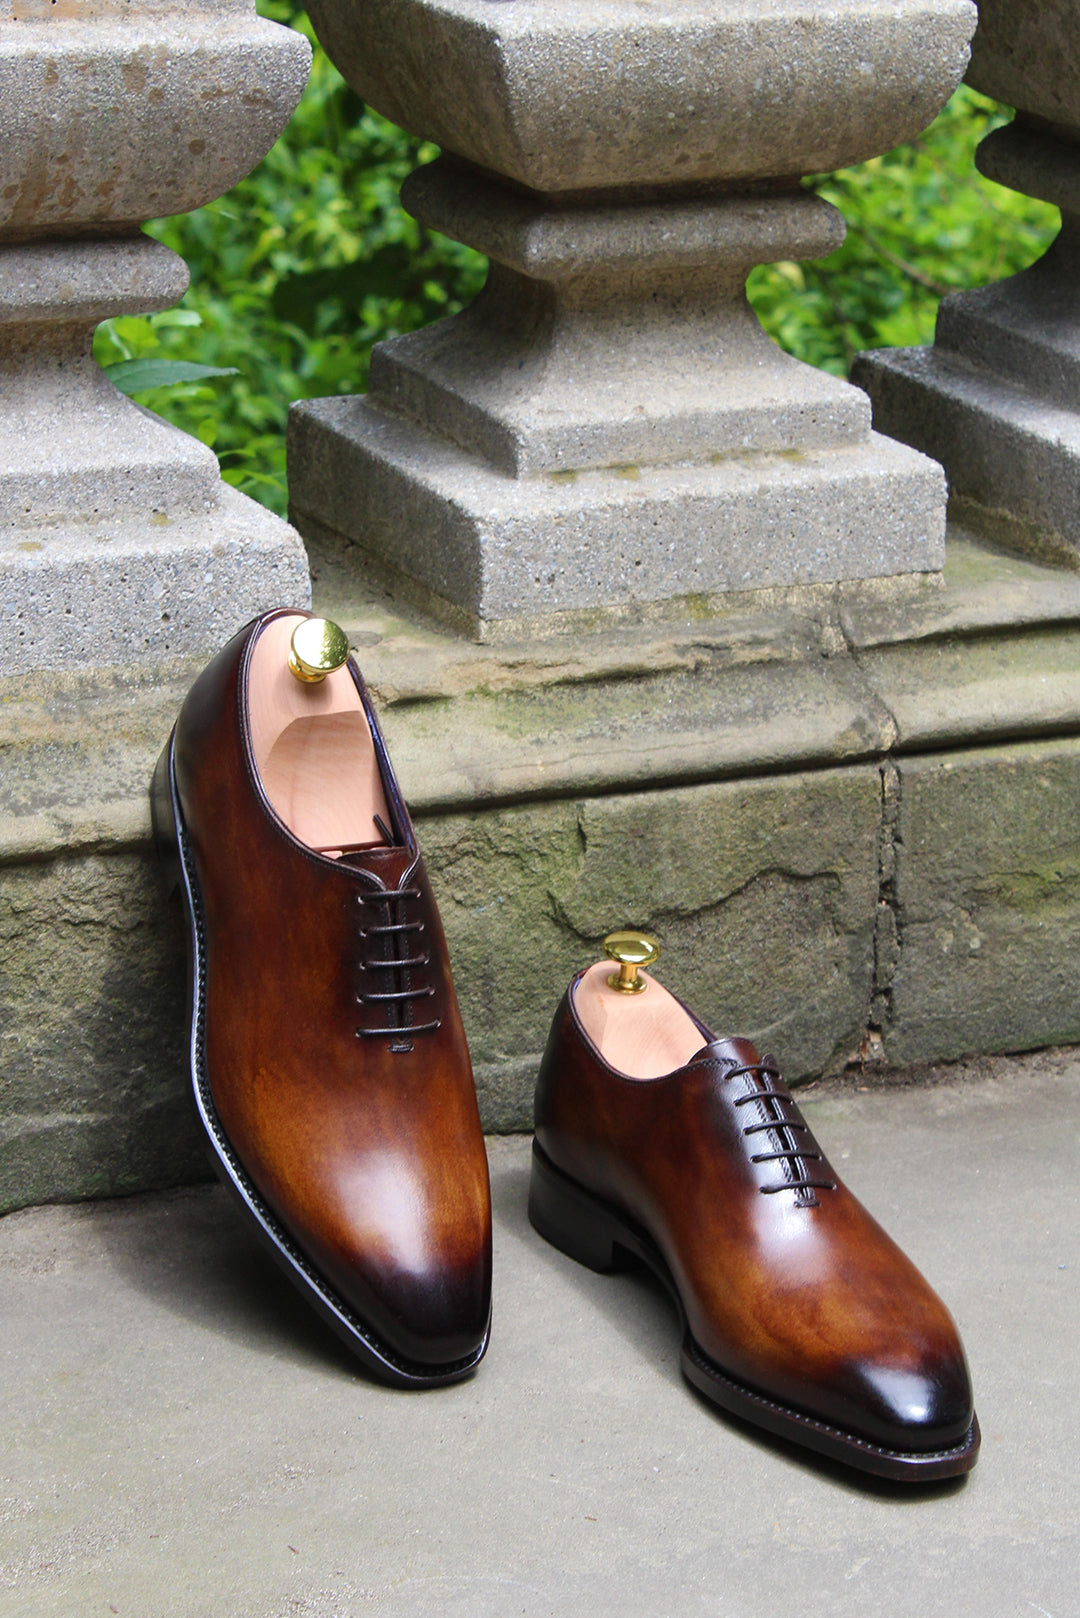 Bondeno Bespoke Shoes New York